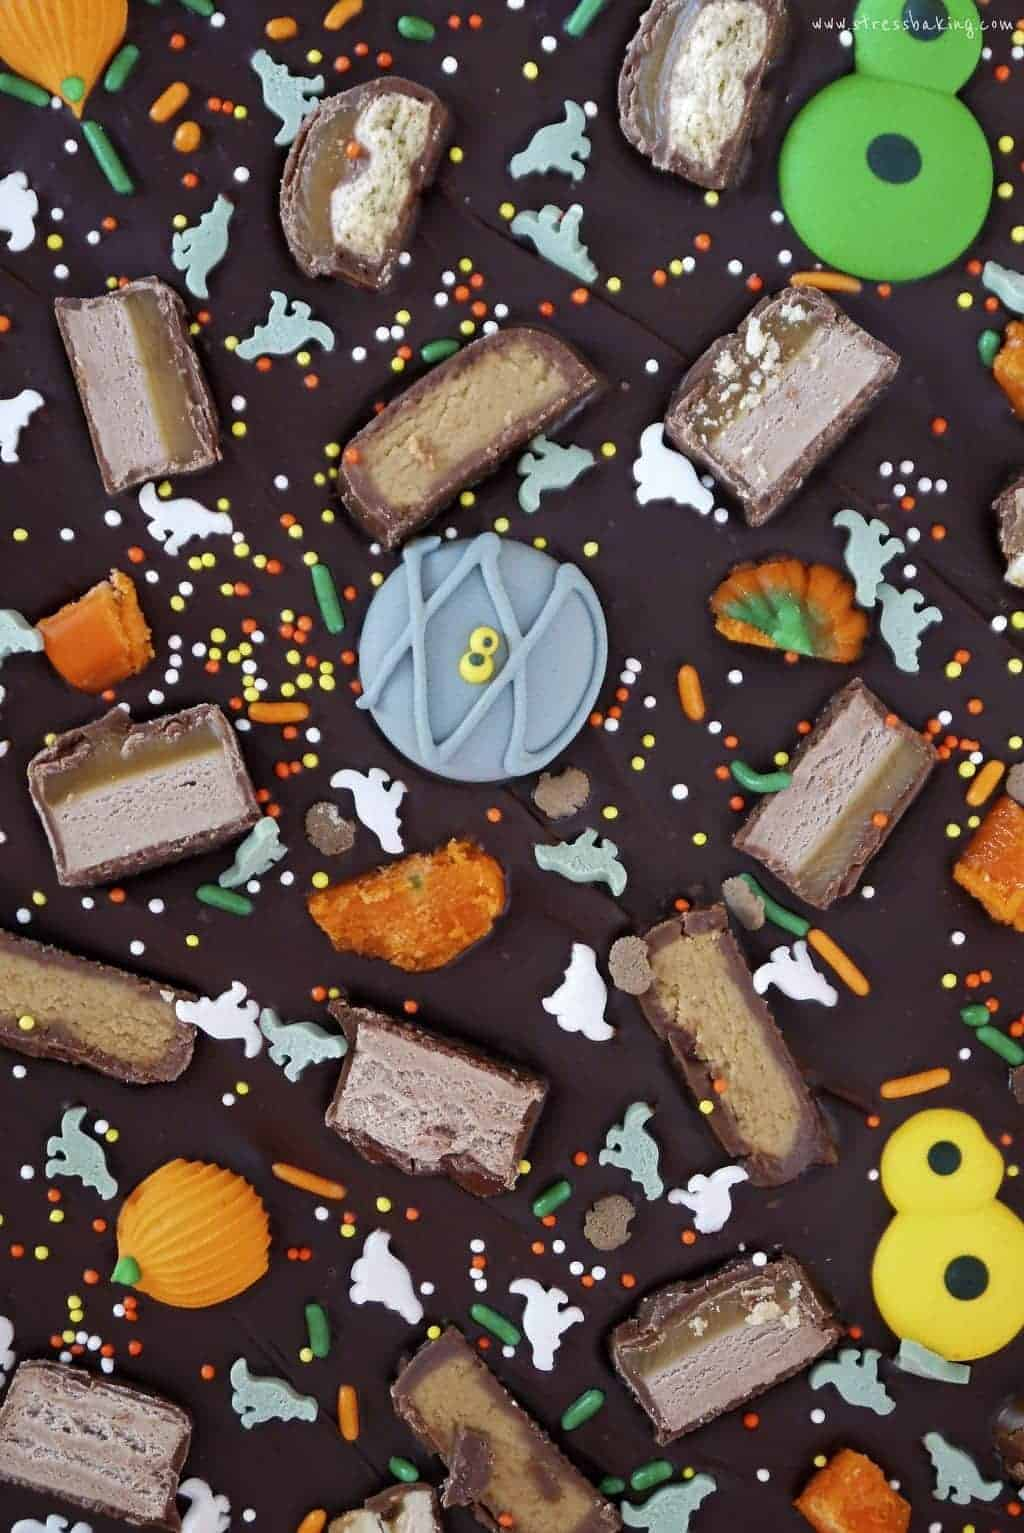 Leftover Halloween Candy Bark: Three ingredients for a sweet and salty way to use up leftover Halloween candy! | stressbaking.com #stressbaking #halloween #leftovercandy #candy #chocolate #bark #candybark